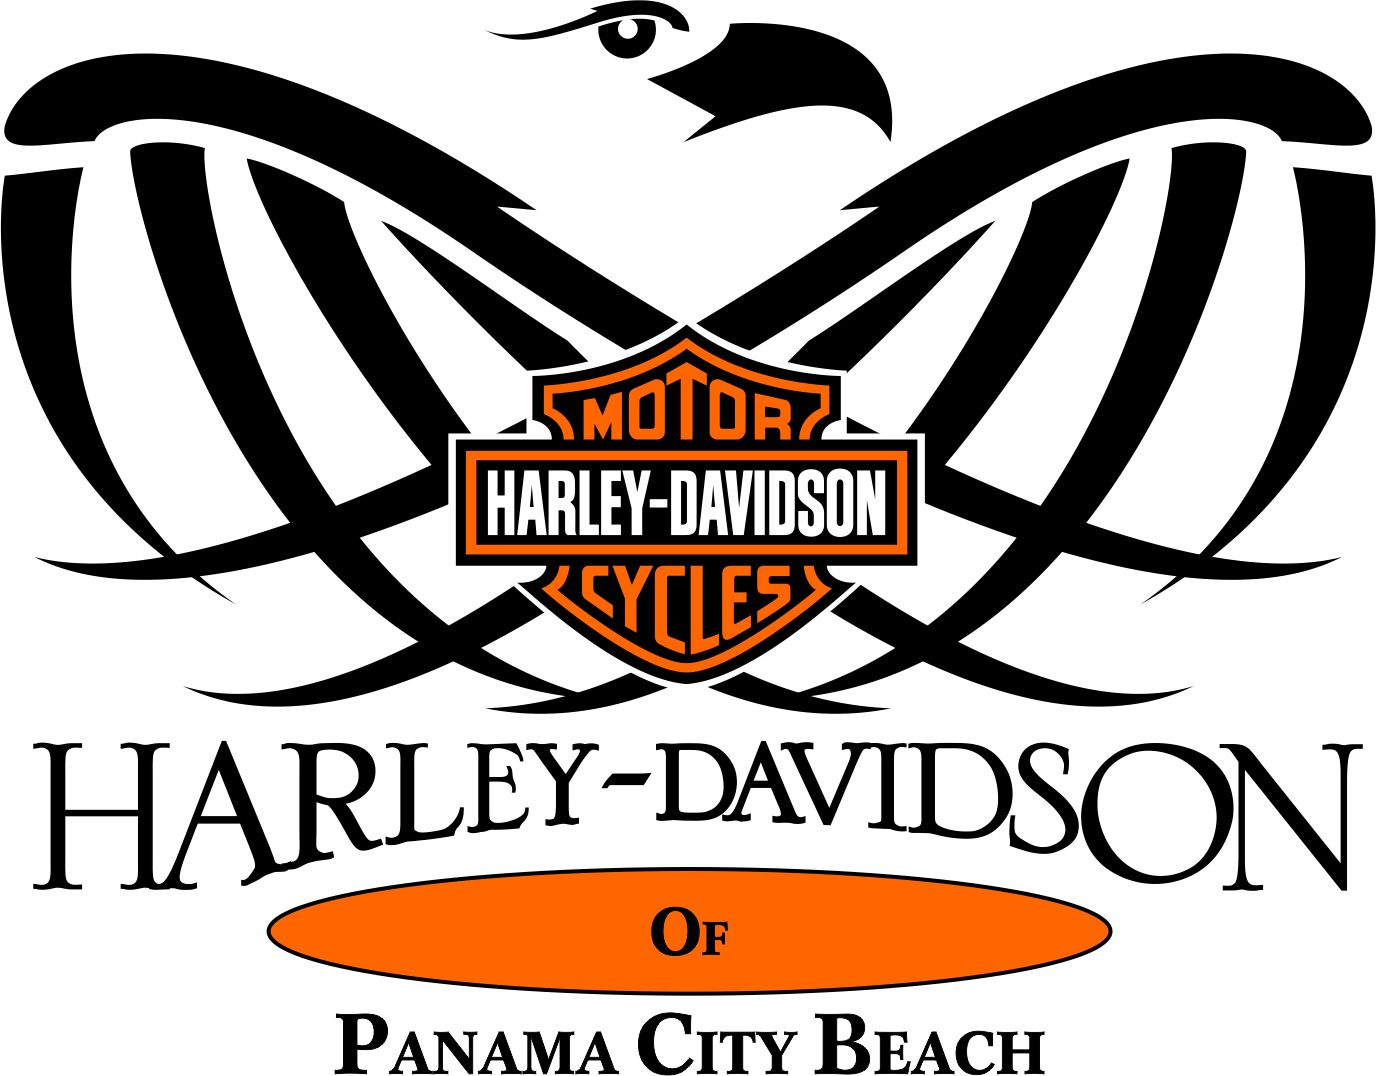 Panama City Beach Harley-Davidson